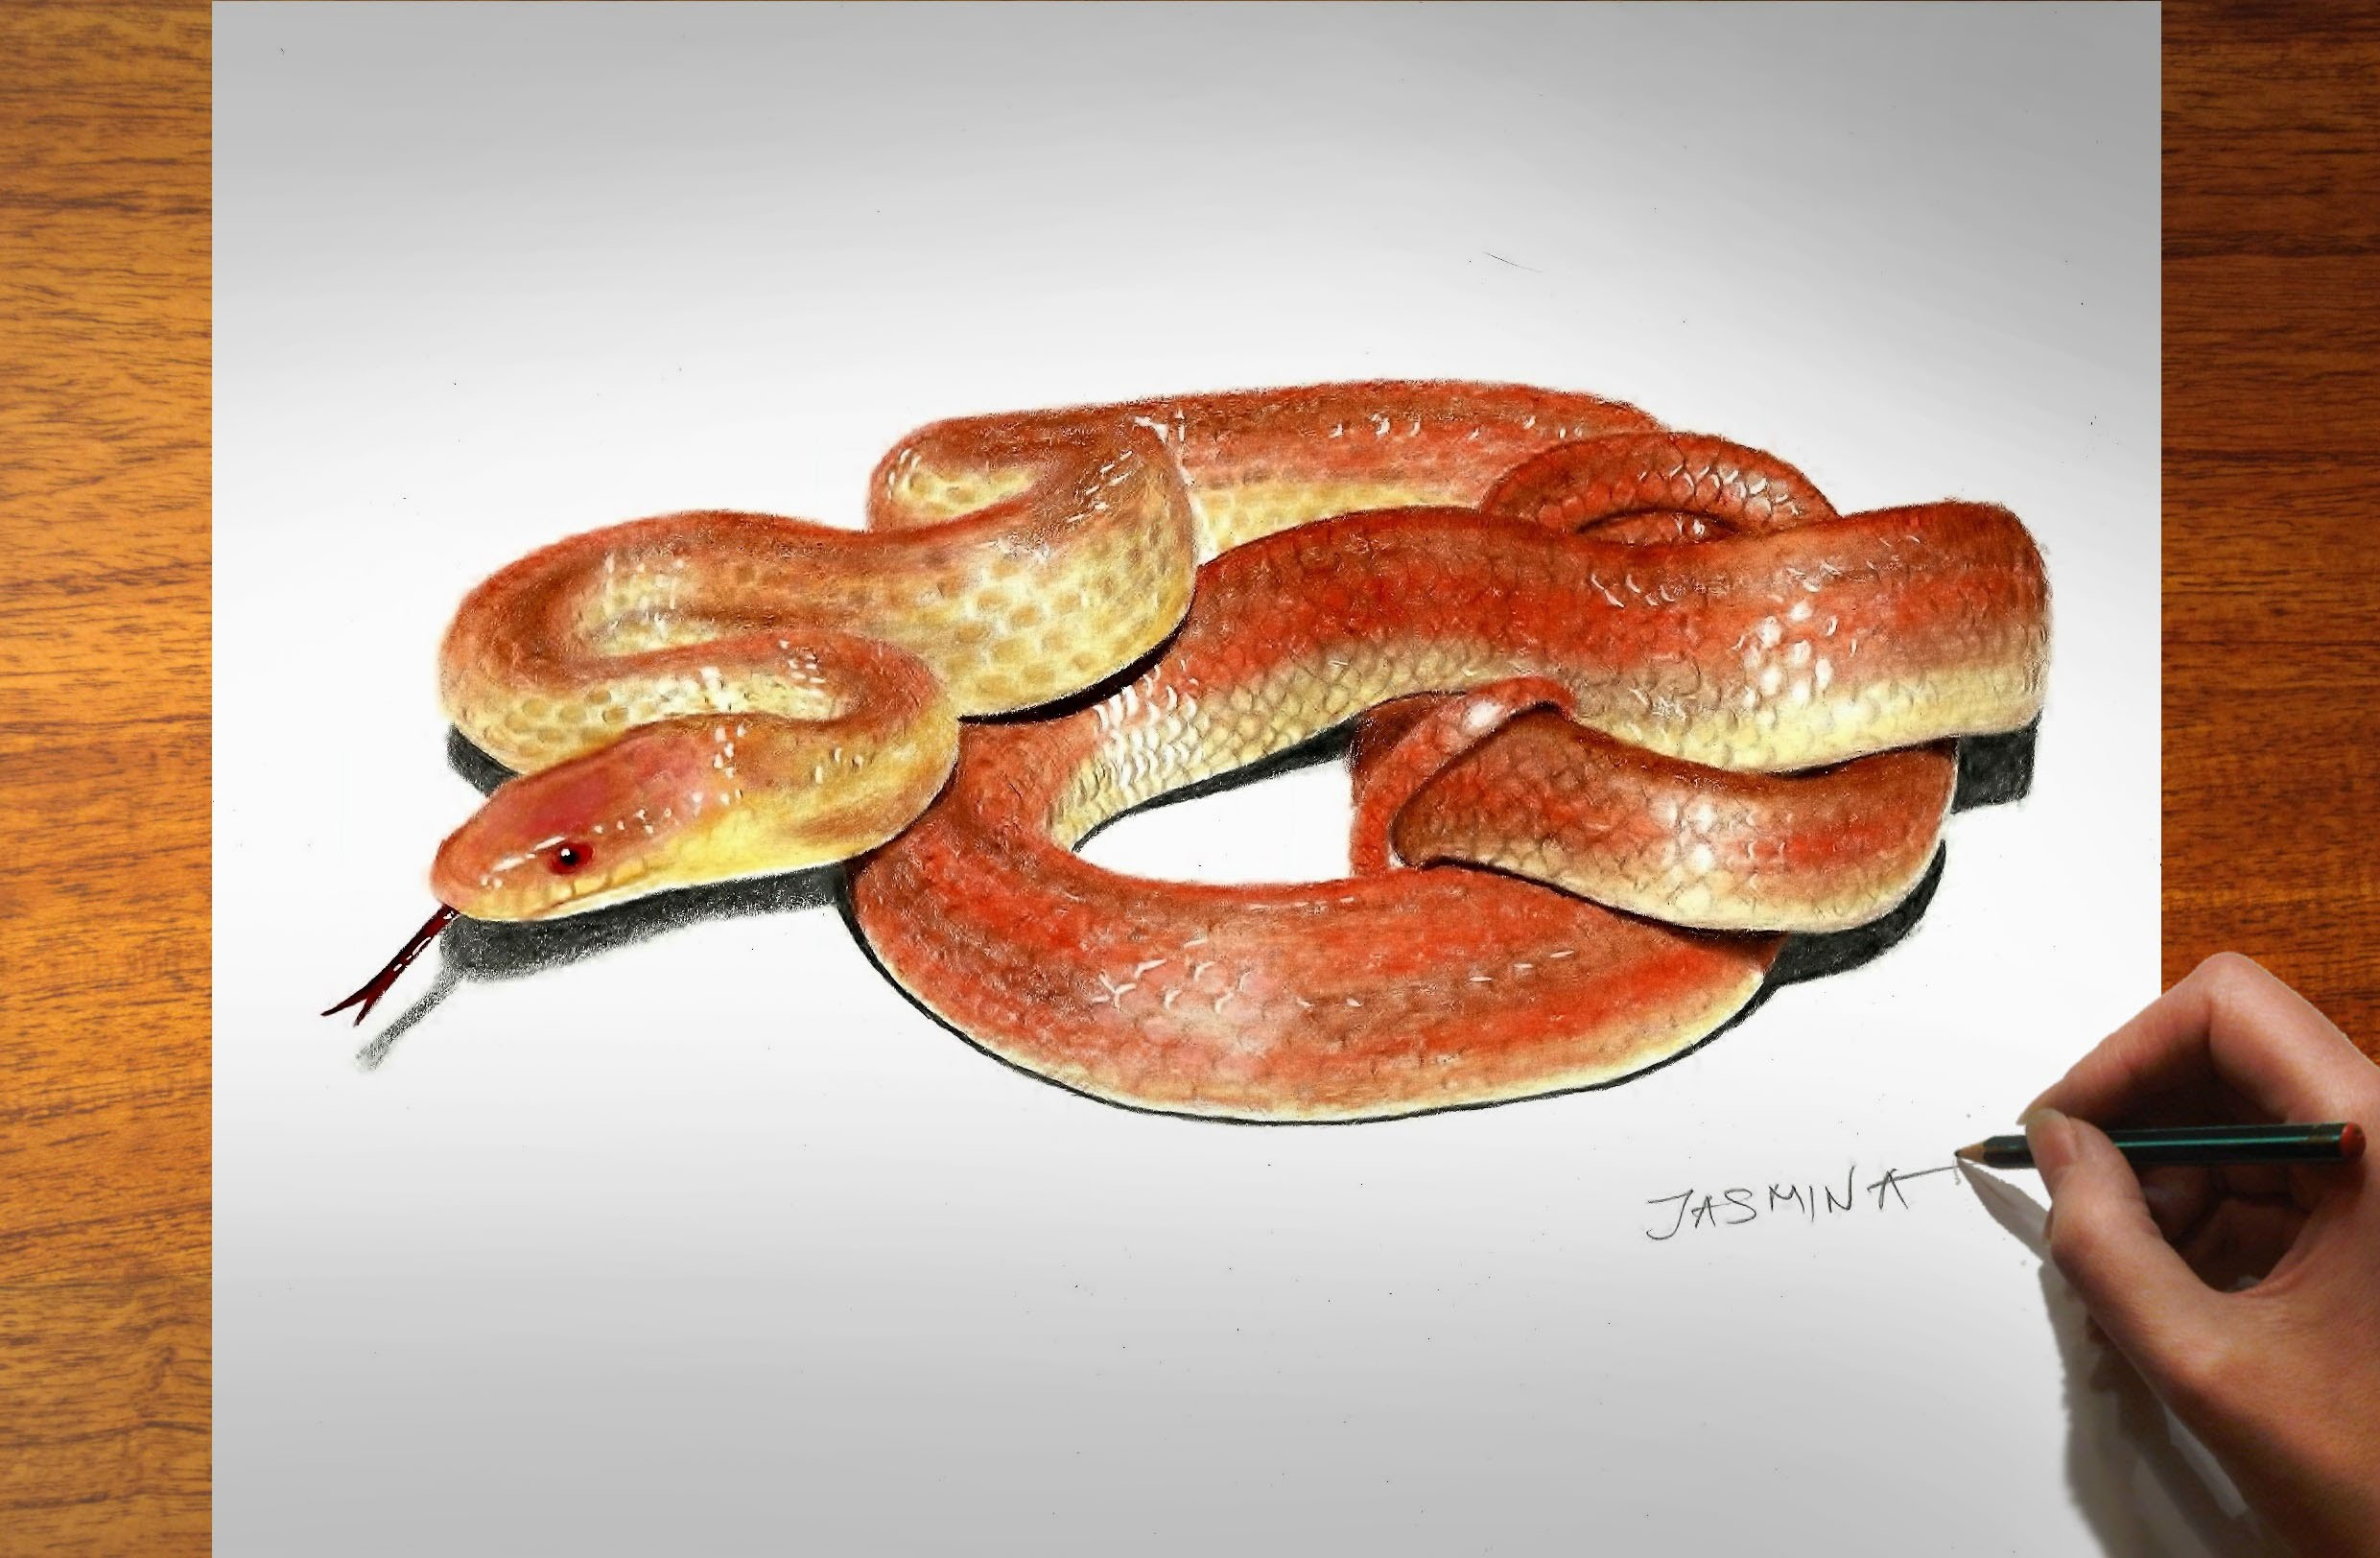 Drawn snake realistic How Draw Snake YouTube Realistic